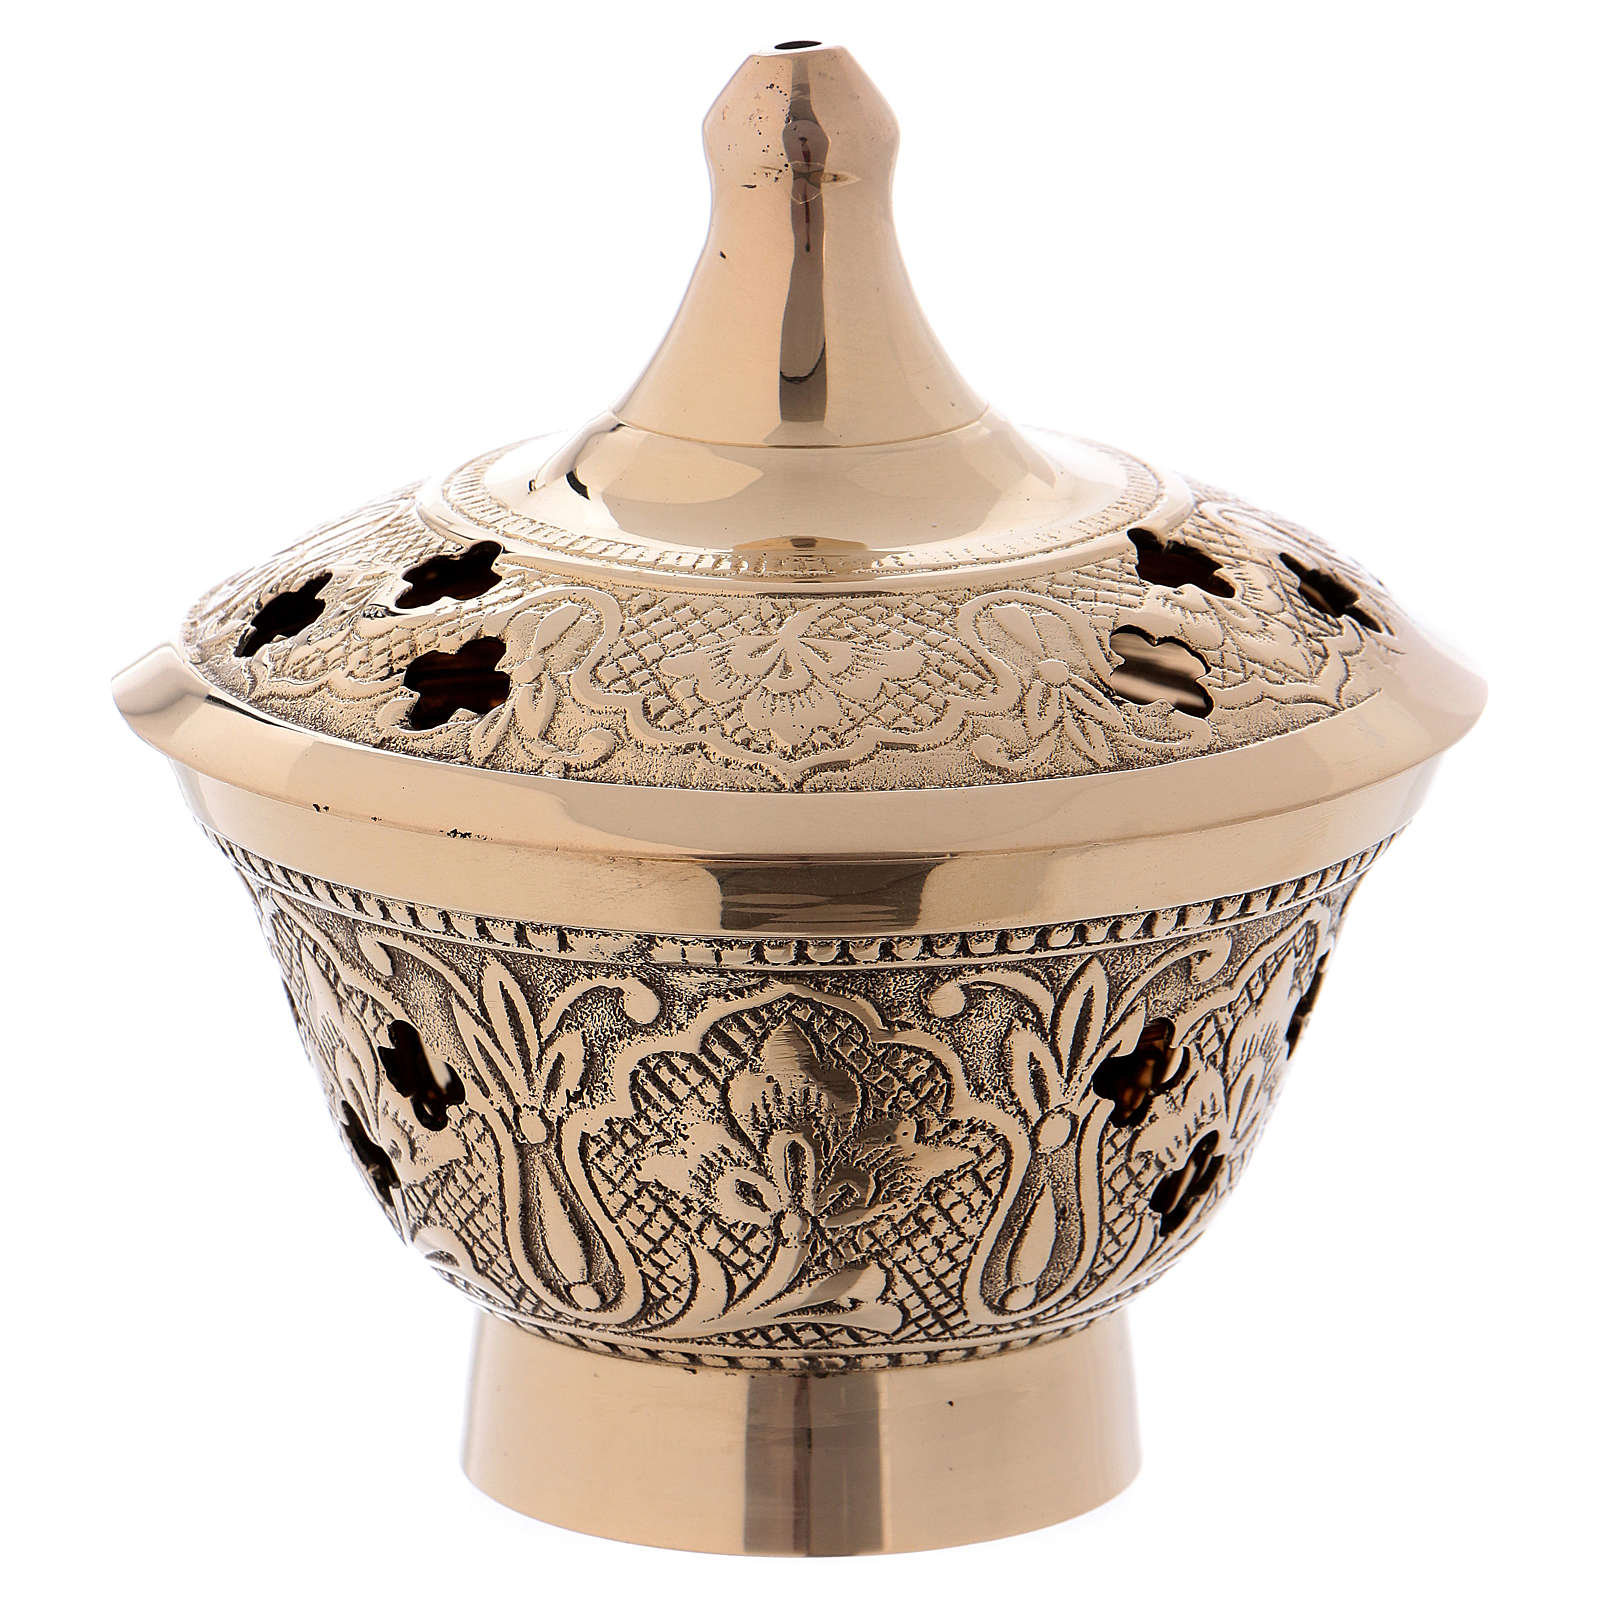 Incense burner in antique-style gold-plated brass with relief decoration 3